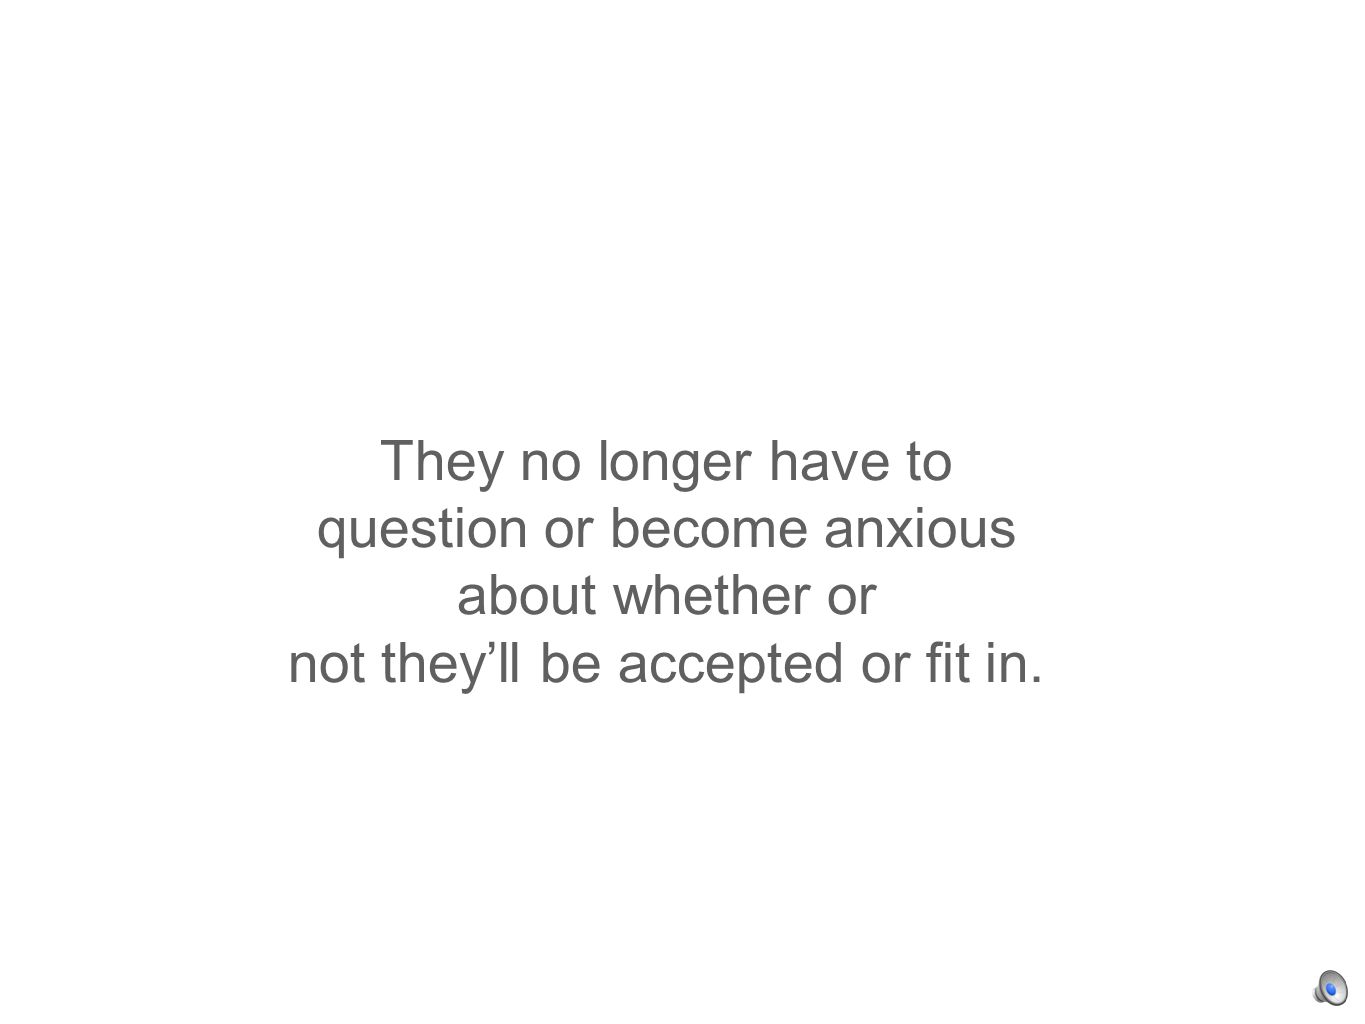 They no longer have to question or become anxious about whether or not theyll be accepted or fit in.